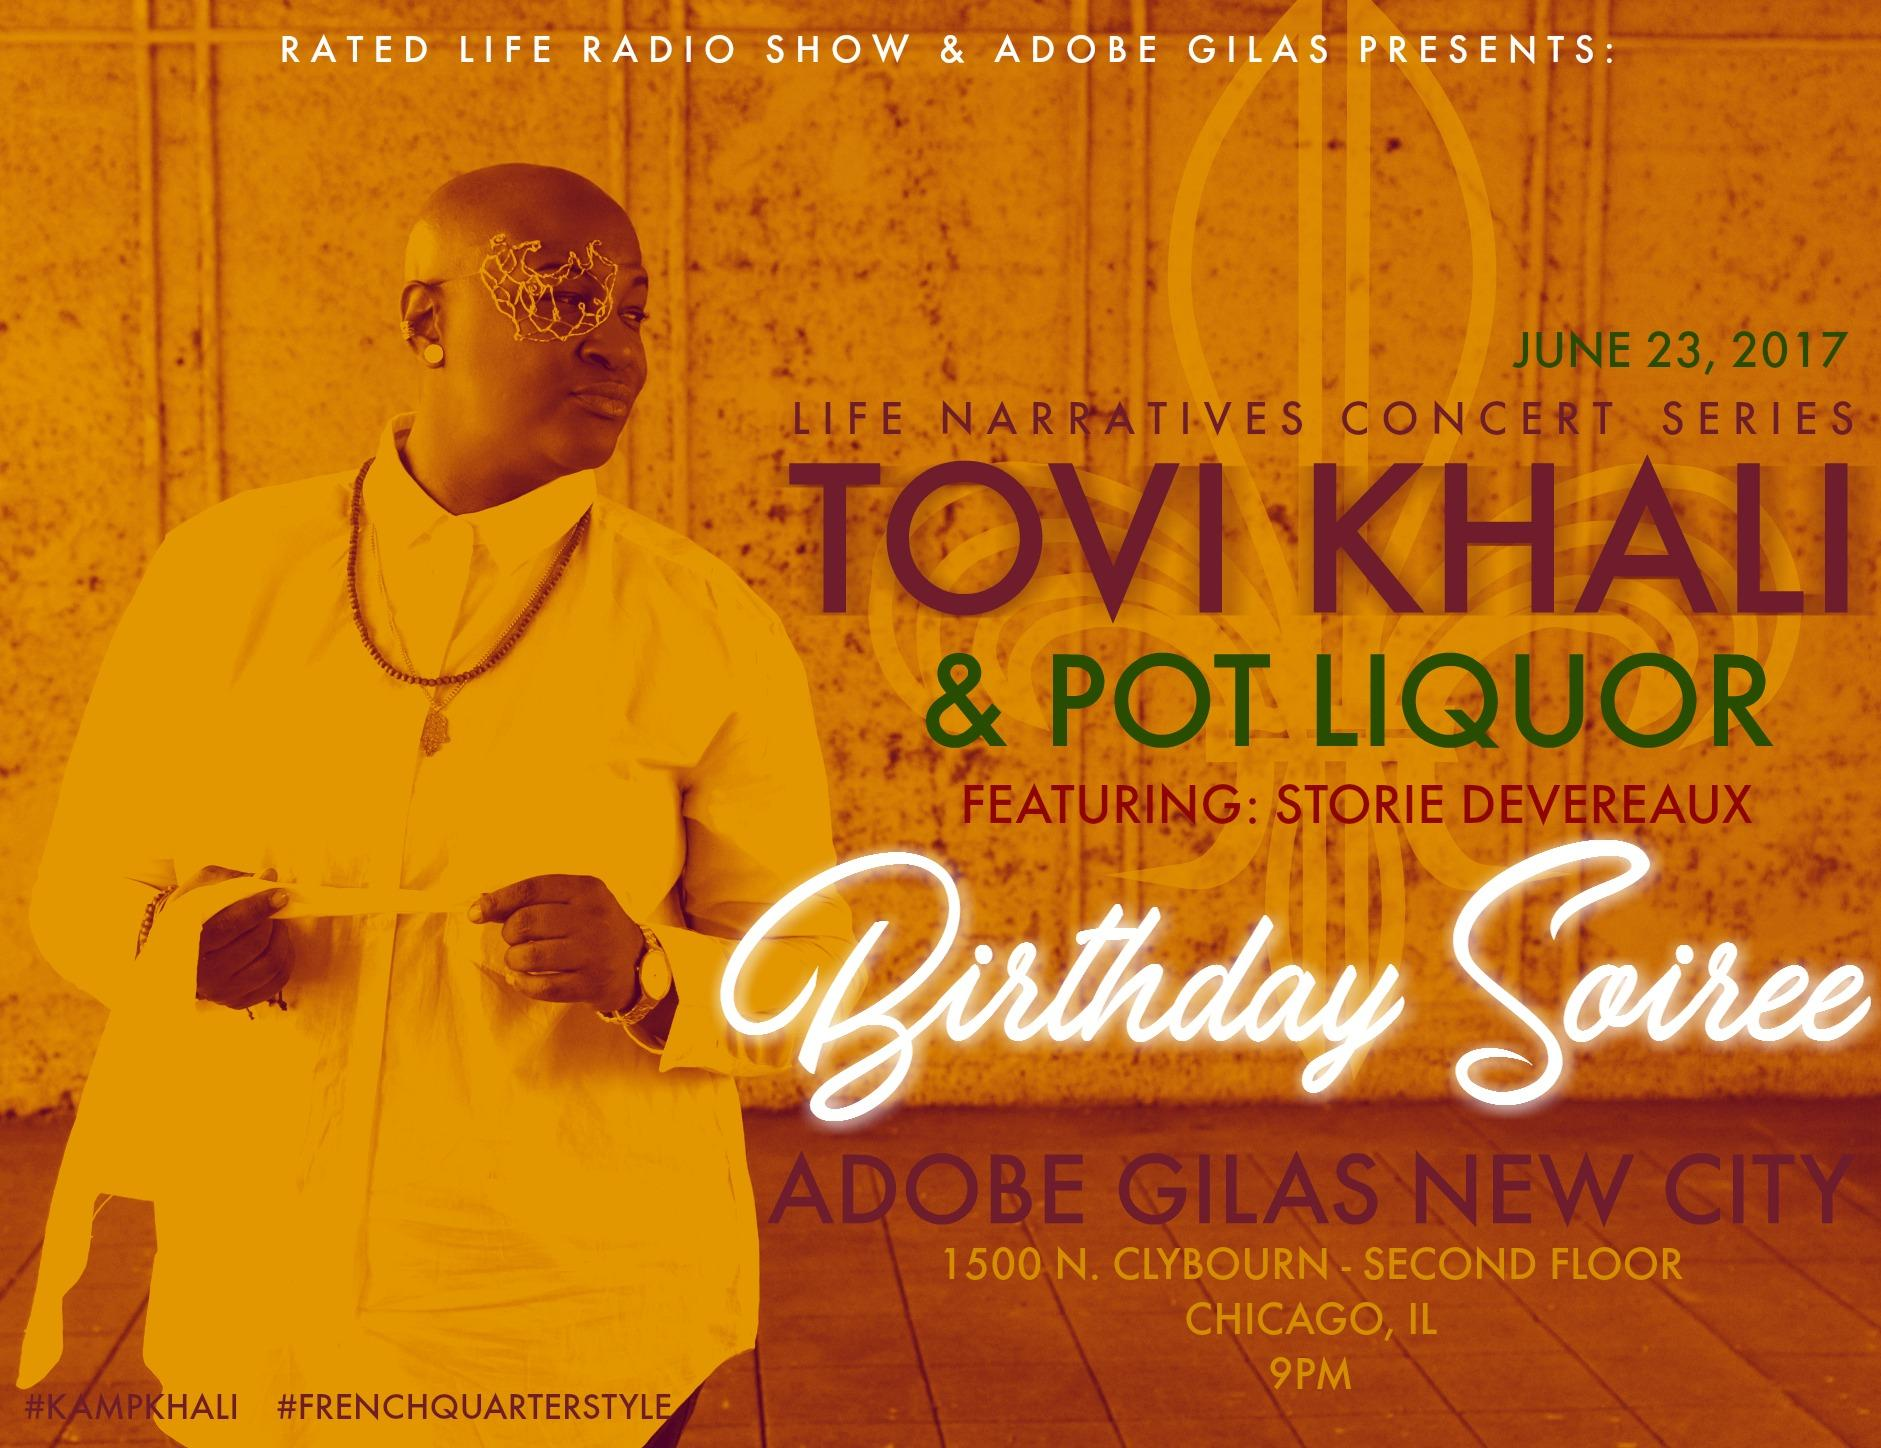 LIFE NARRATIVES CONCERT SERIES Presents Tovi